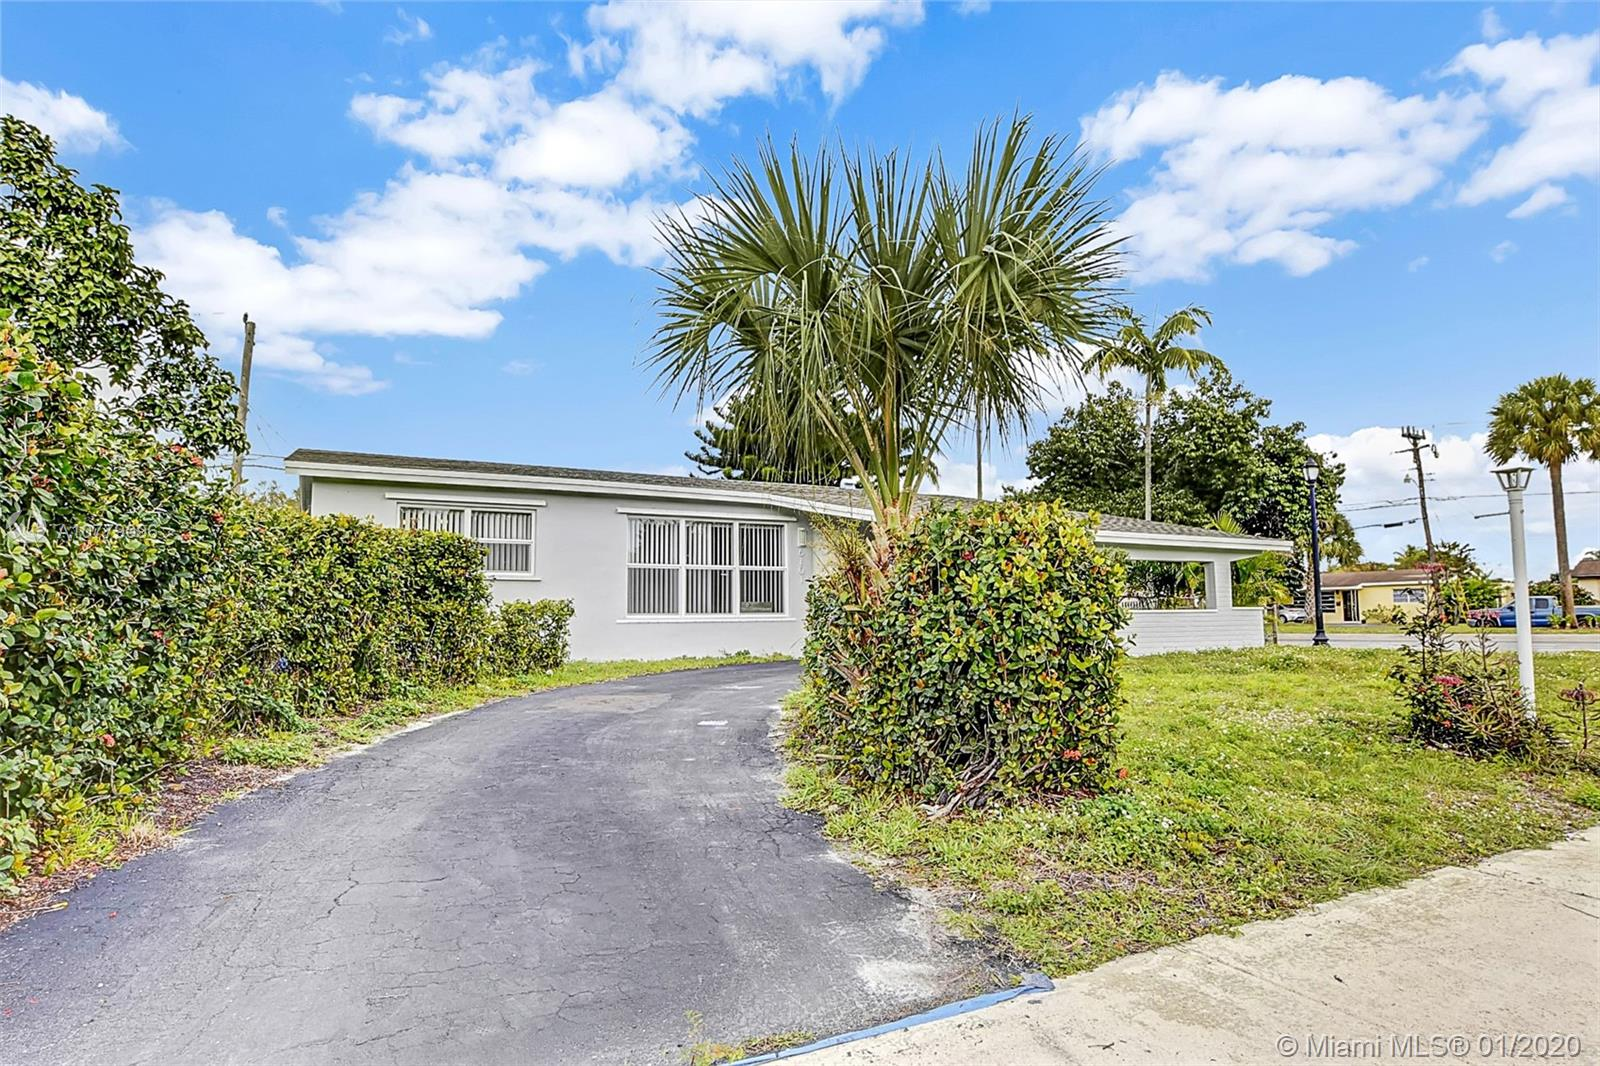 6101 NW 15th Street, Sunrise, FL 33313